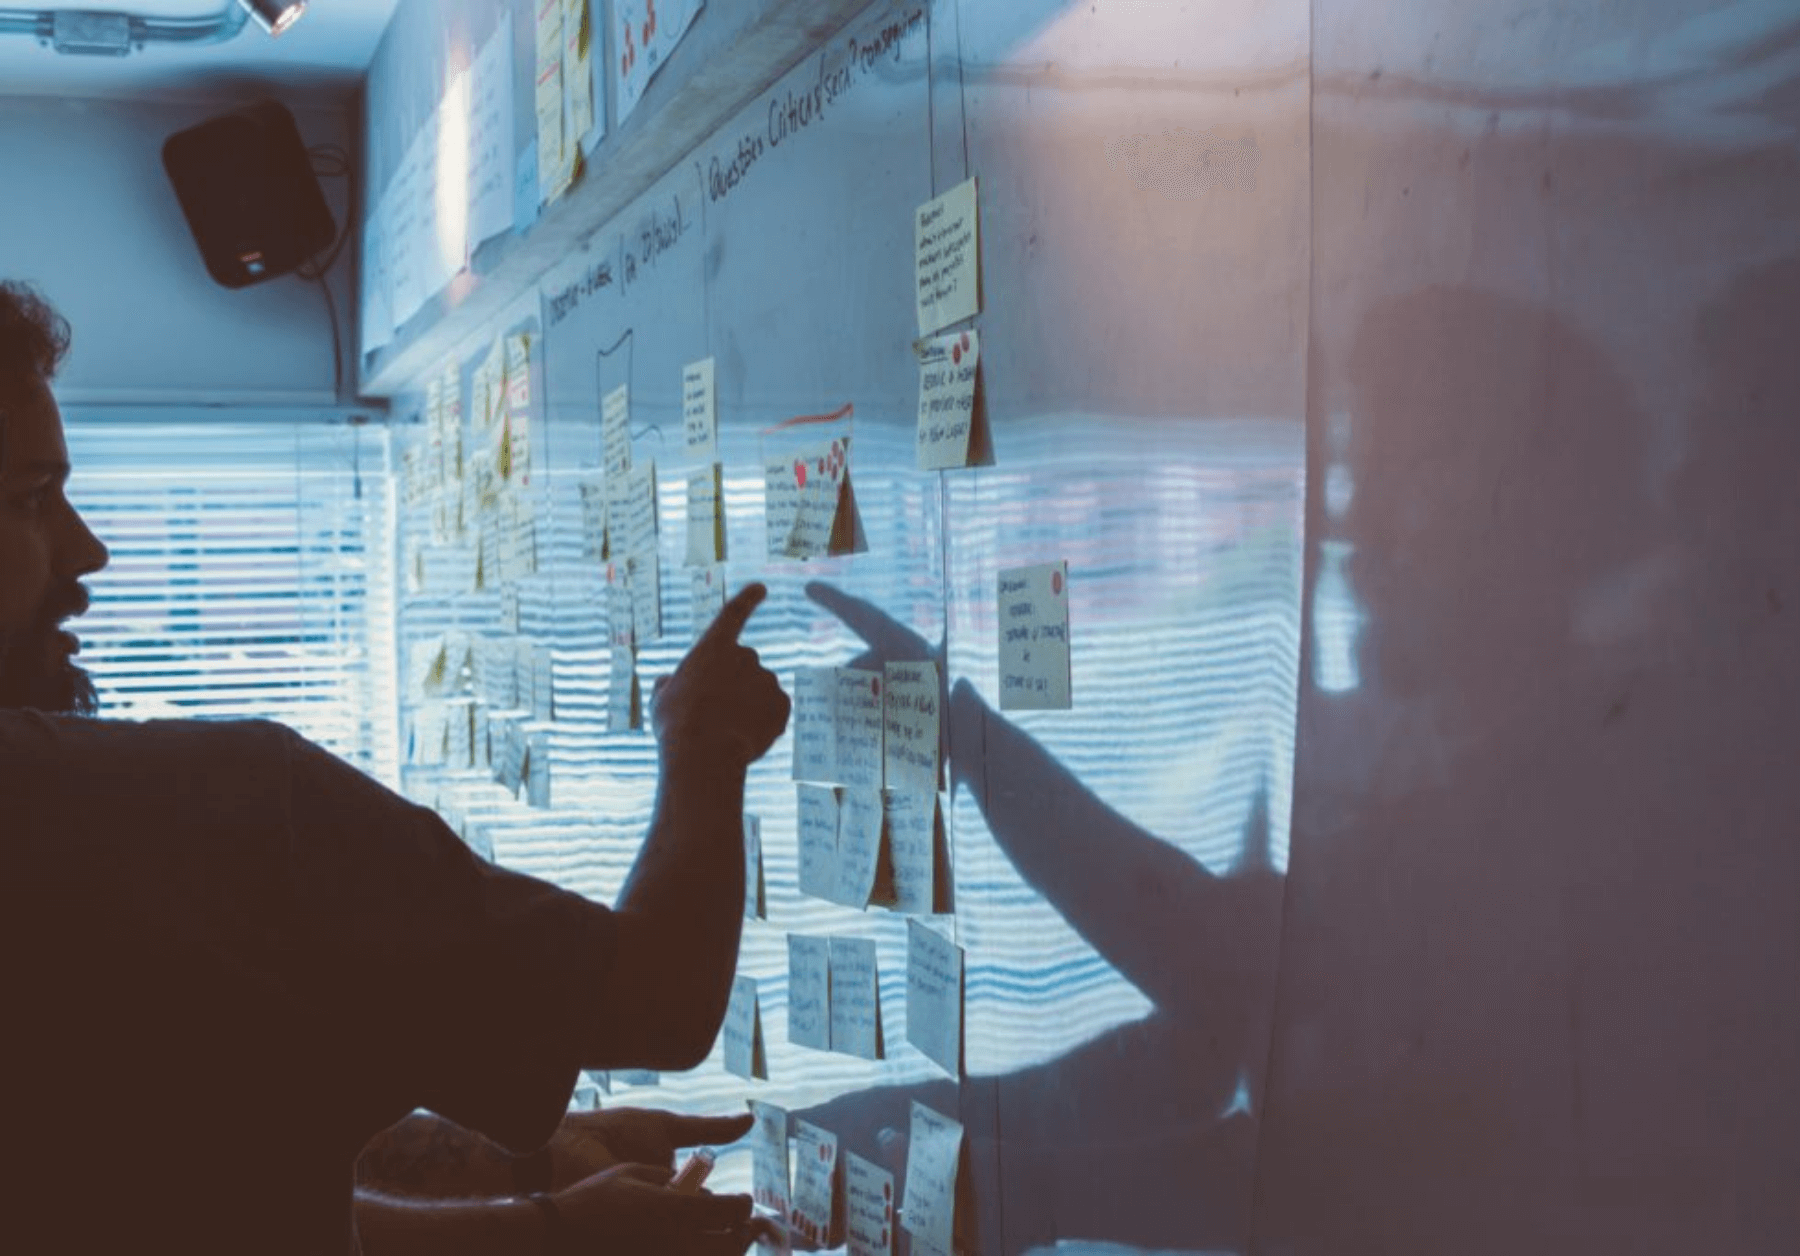 Man working with post it notes